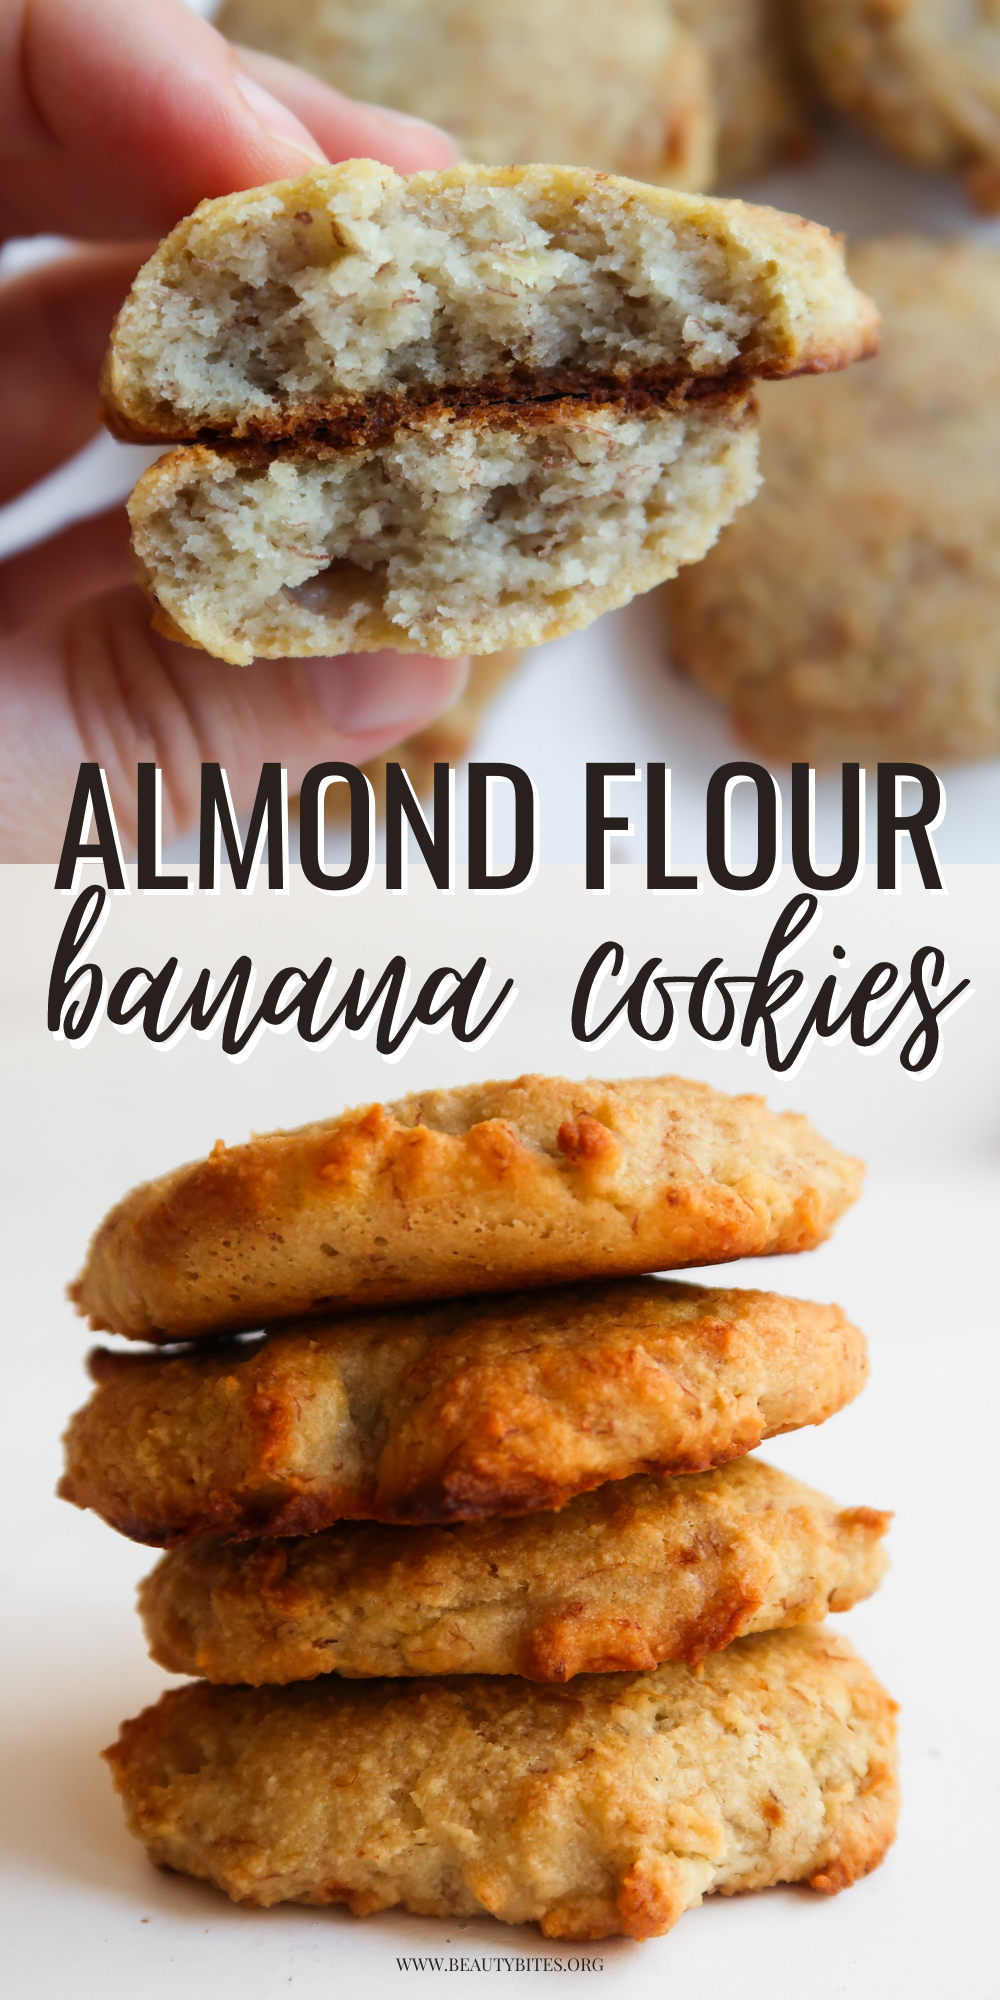 These almond flour banana cookies are a super tasty treat! This is a remarkably easy and healthy cookie recipe that is made with a few basic ingredients, is vegan, paleo and a great healthy snack or breakfast too. You just have  to make these delicious vegan cookies!